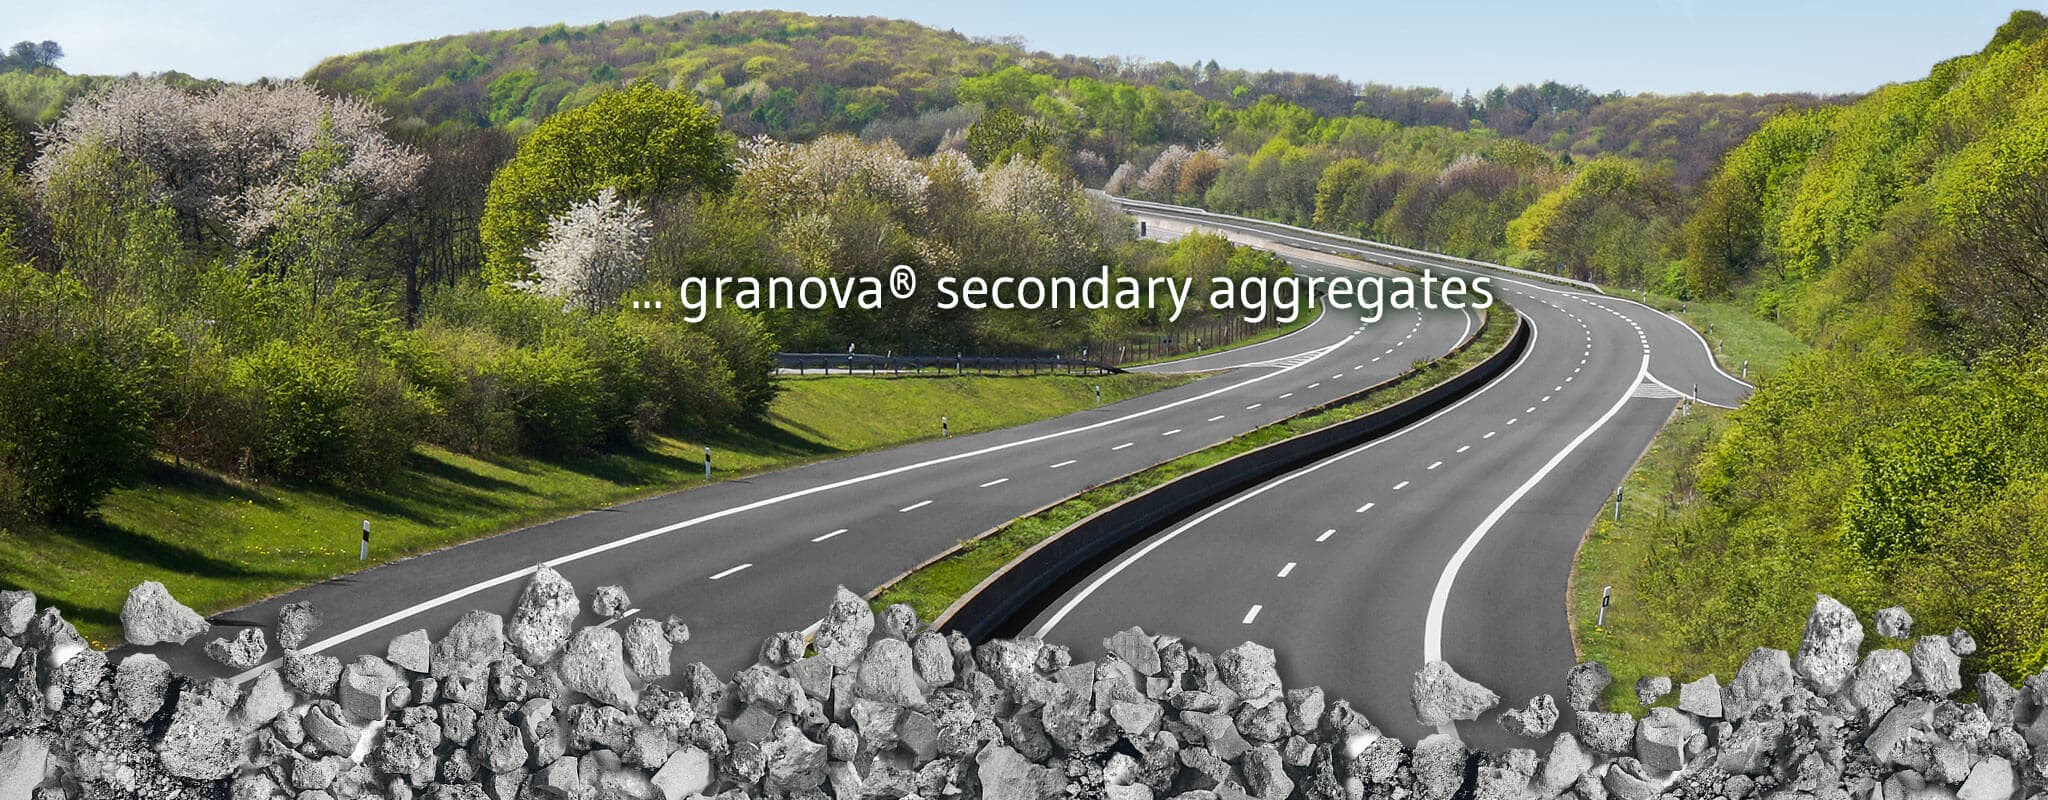 IBA from energy-from-waste plants is the base for granova® secondary aggregates